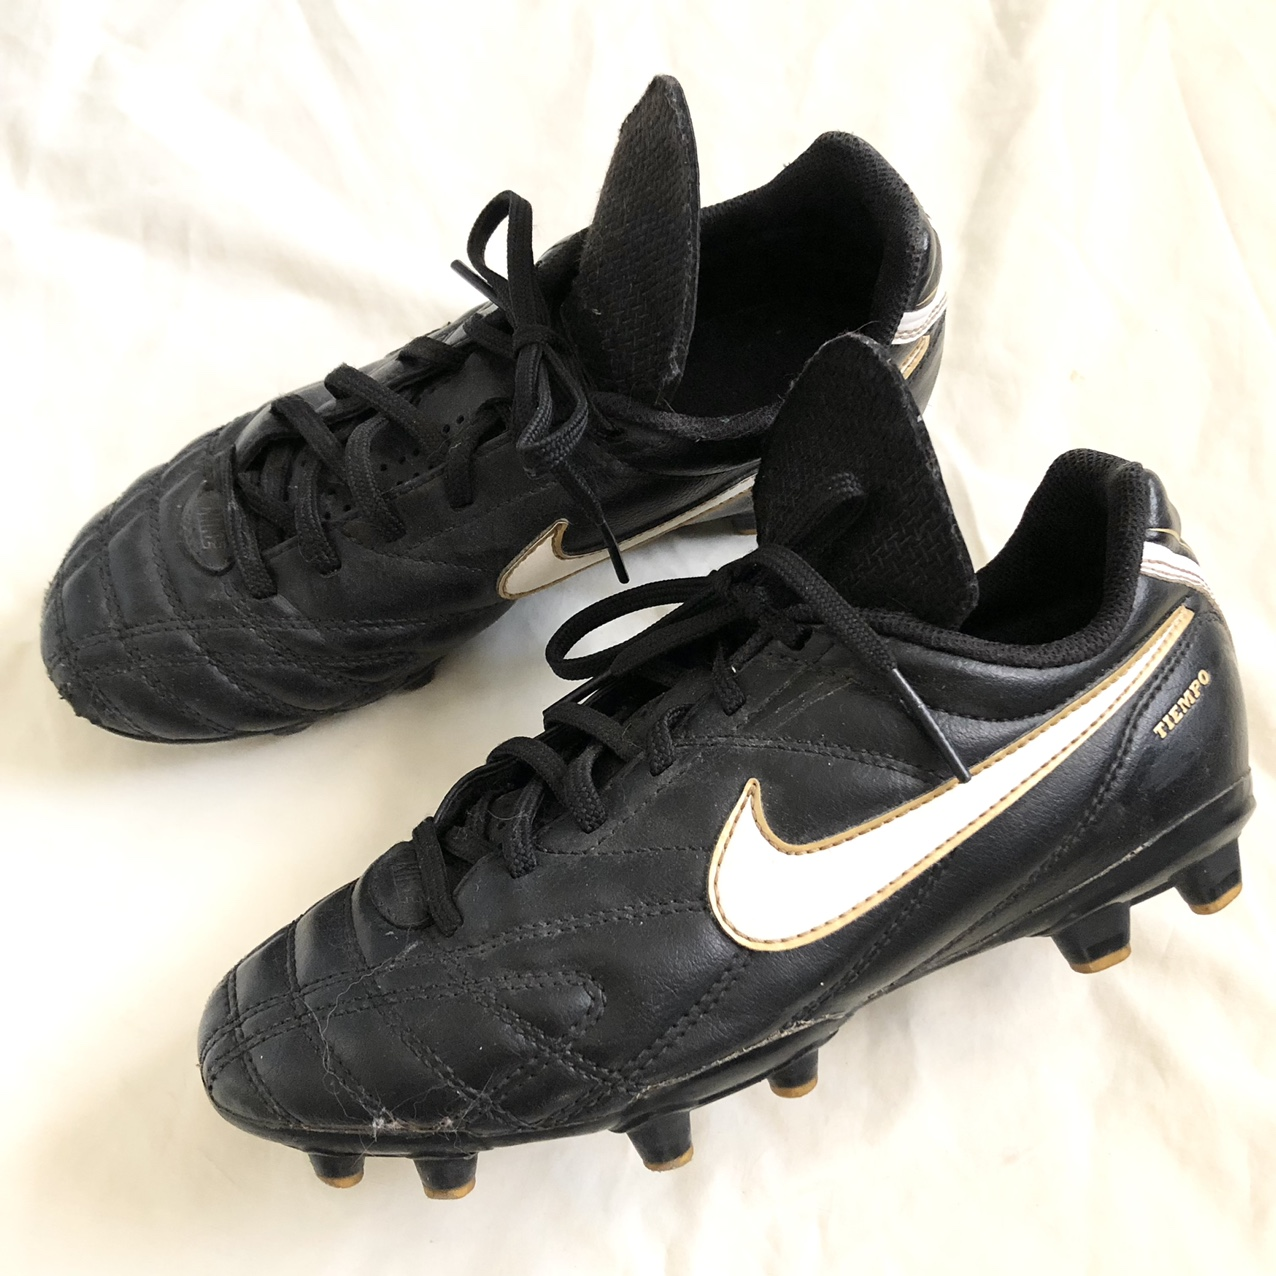 Product Image 1 - nike tiempo soccer cleat shoes